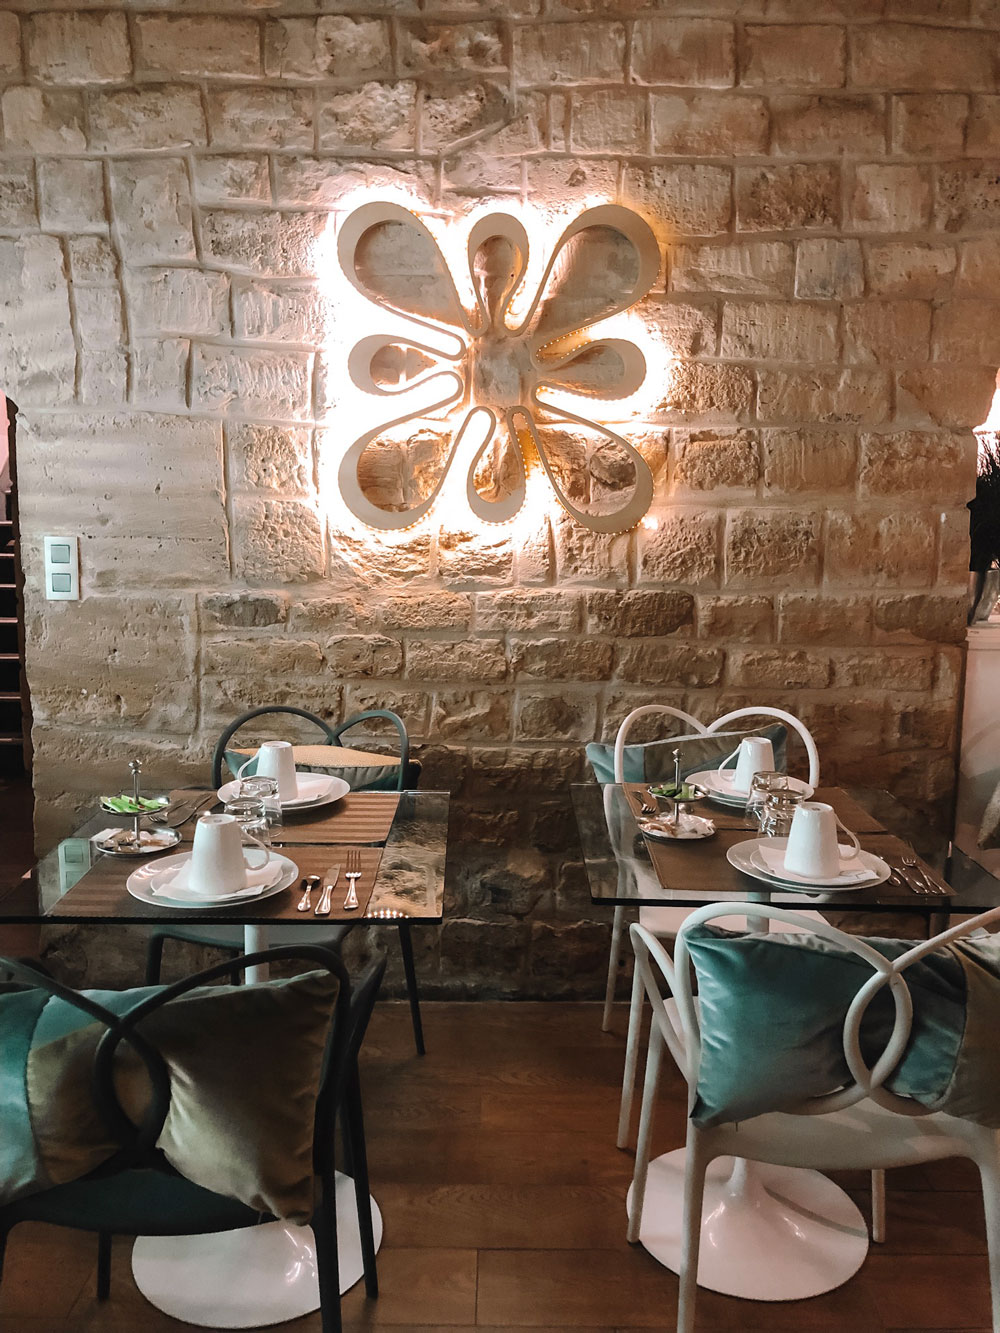 Hotel Chavanel's breakfast room is located in a stone cellar